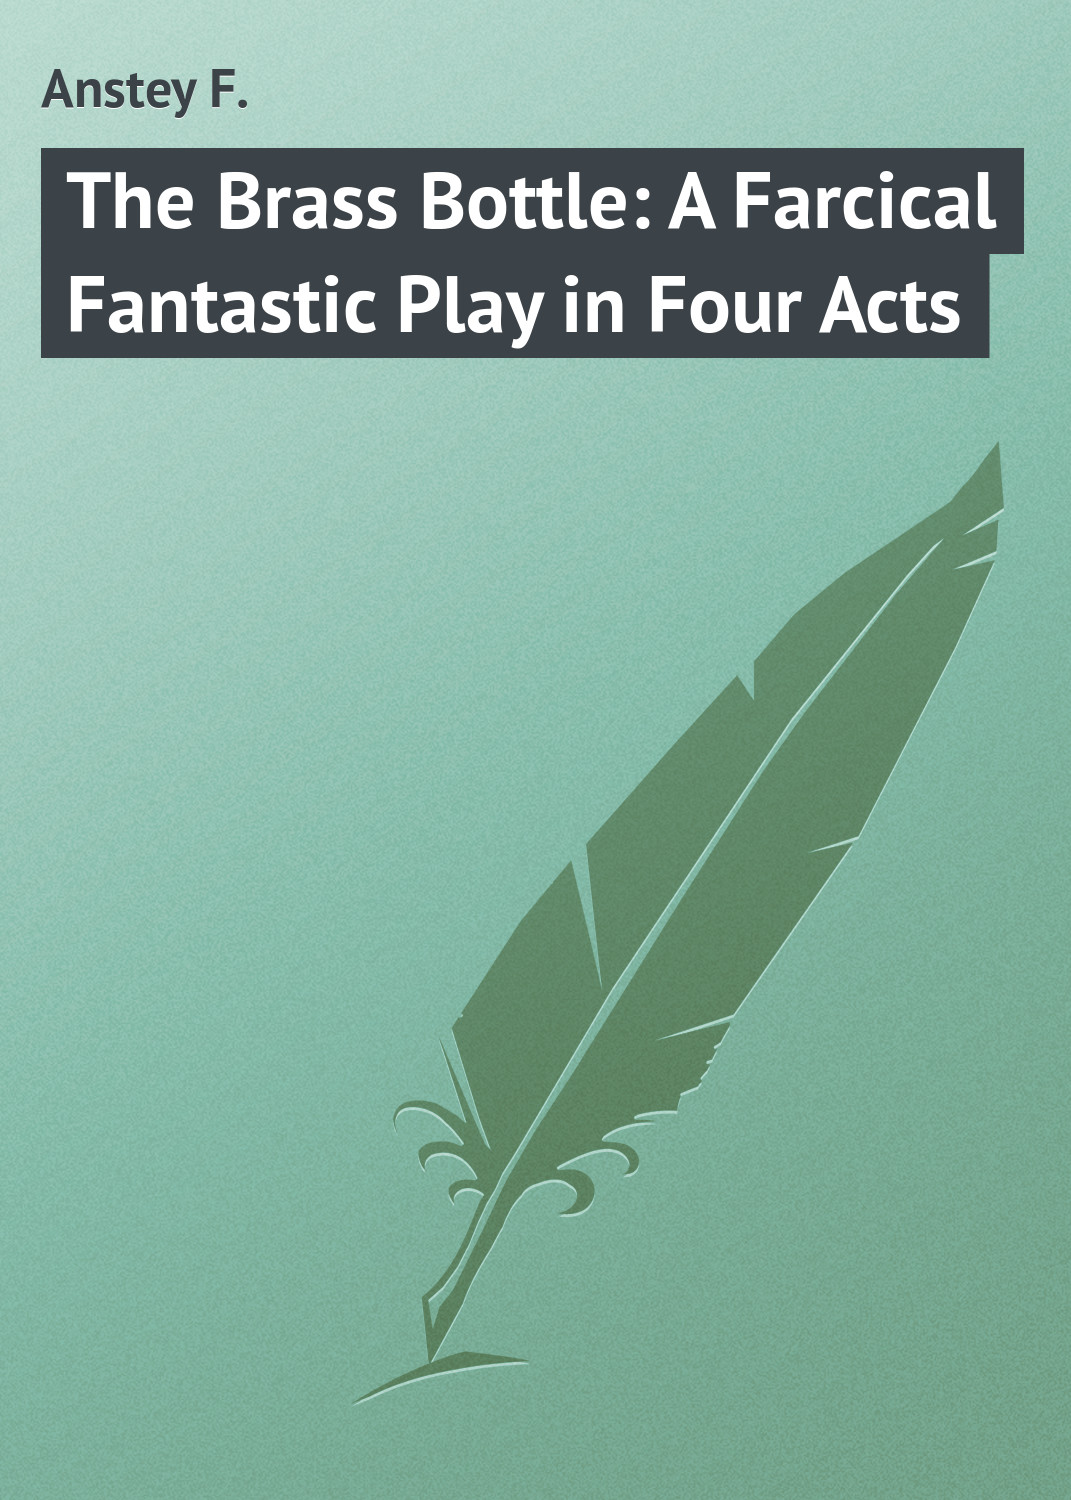 Anstey F. The Brass Bottle: A Farcical Fantastic Play in Four Acts joseph mary edgar hart swords drawn a romantic play in four acts